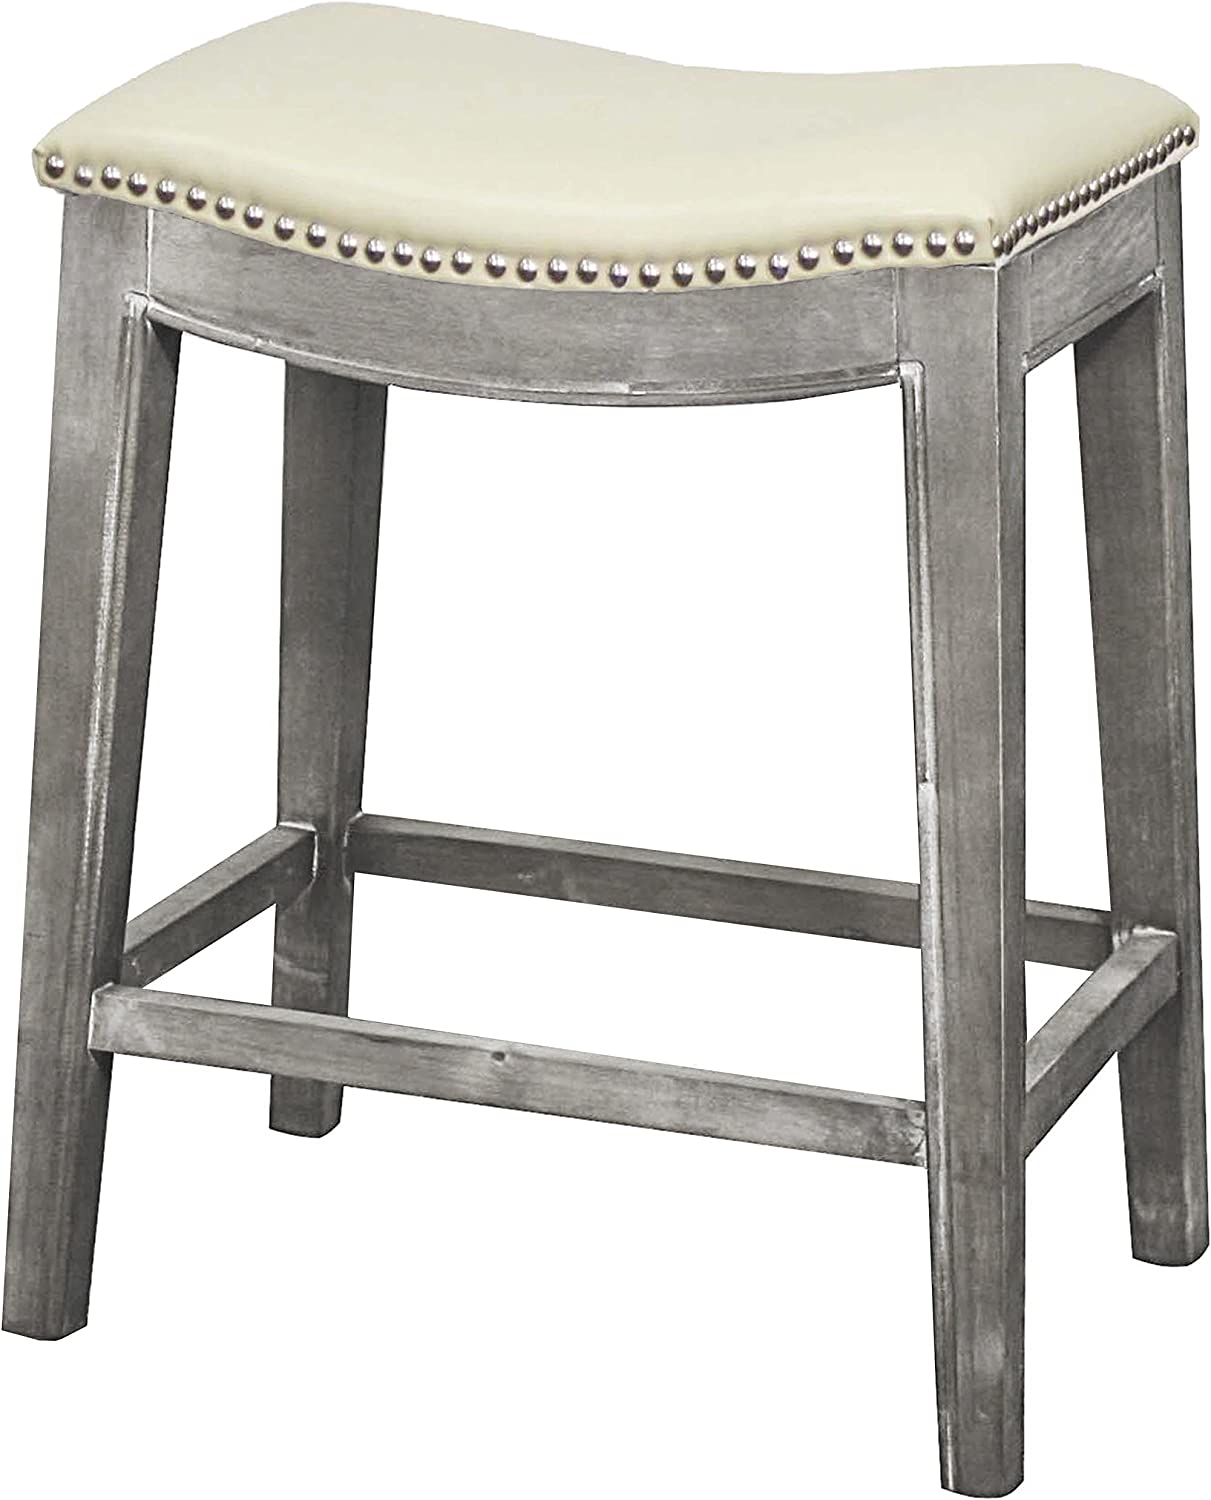 New Pacific Direct Elmo Bonded Leather Counter Stool, Beige